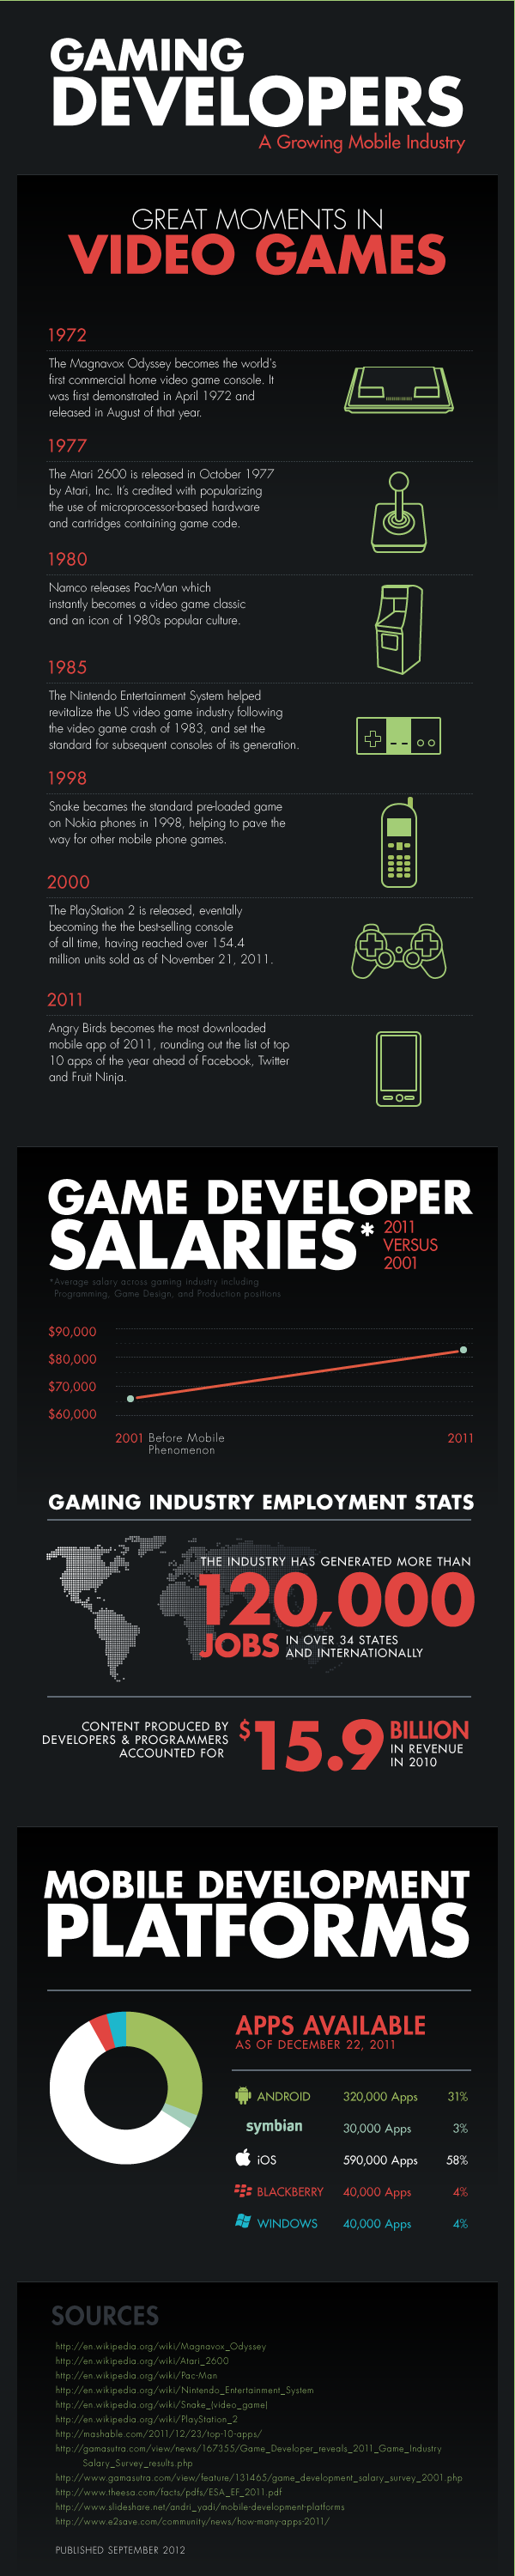 Gaming Developers: A Growing Mobile Industry [INFOGRAPHIC